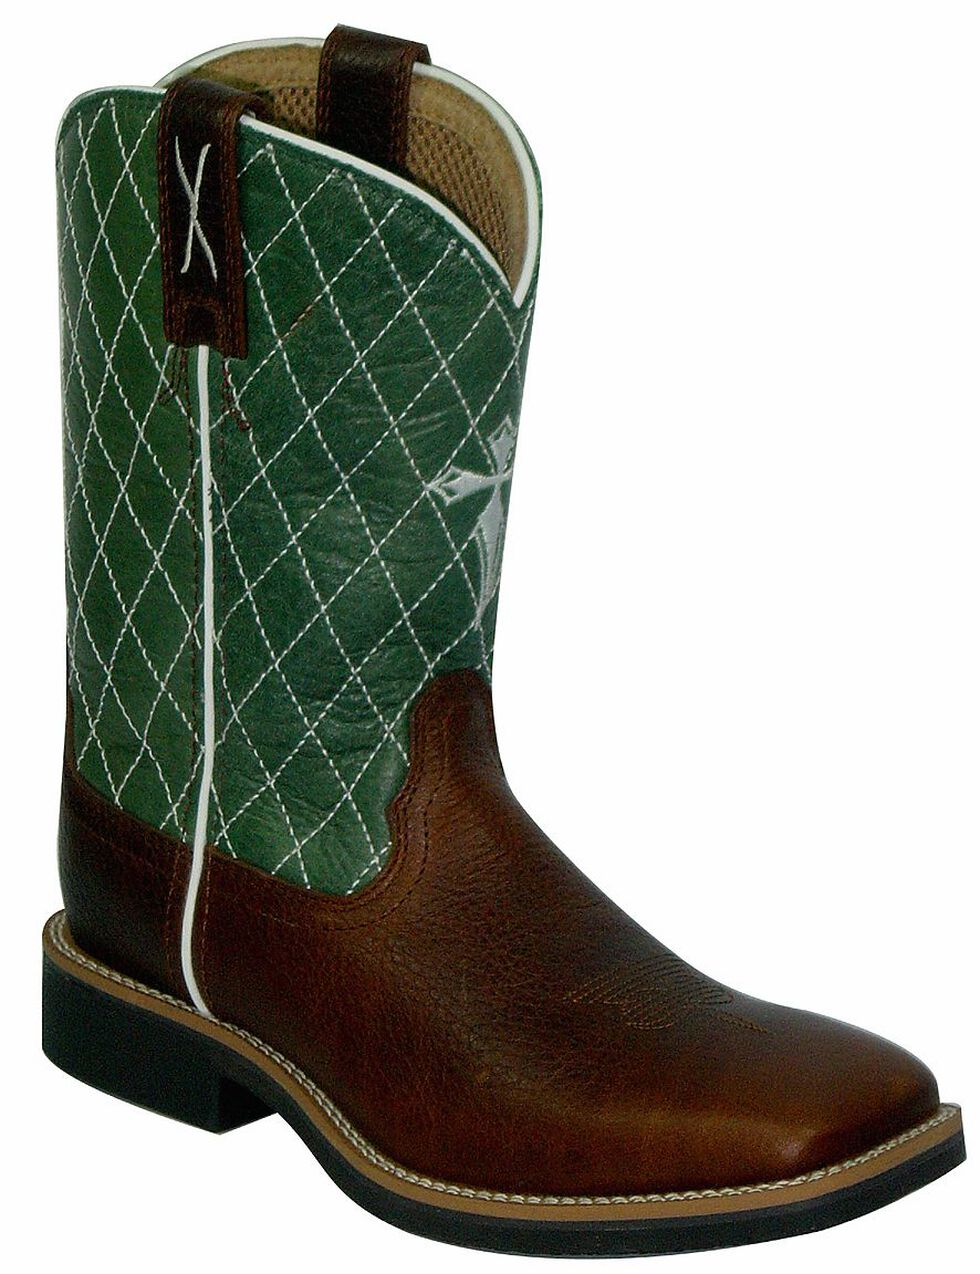 Twisted X Youth Green Cowkid Work Boots - Square Toe, Cognac, hi-res